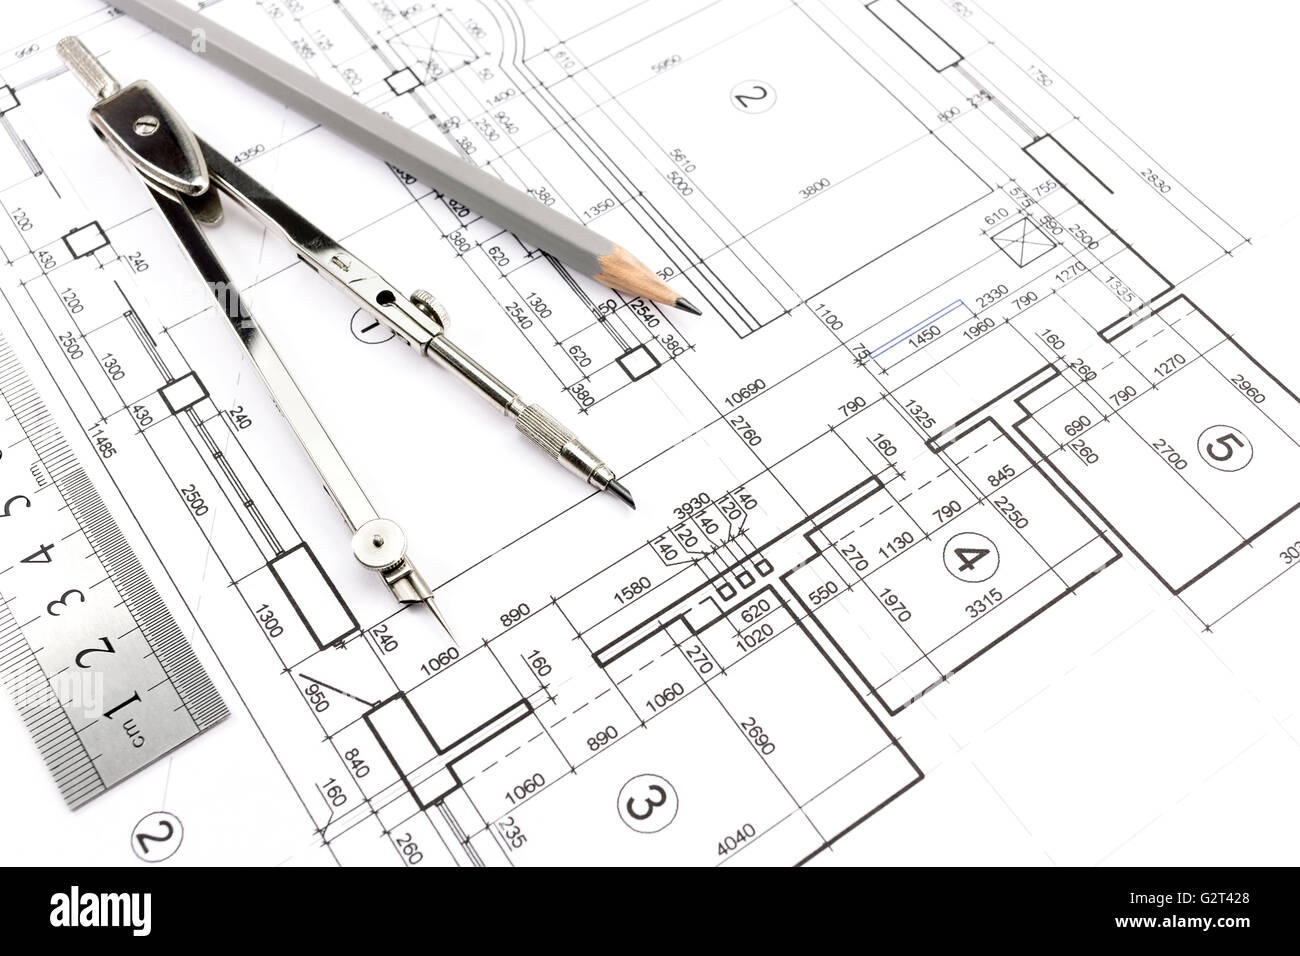 house building construction plans with pencil and drawing compass rh alamy com Construction Framing Diagrams Roof Construction Diagram